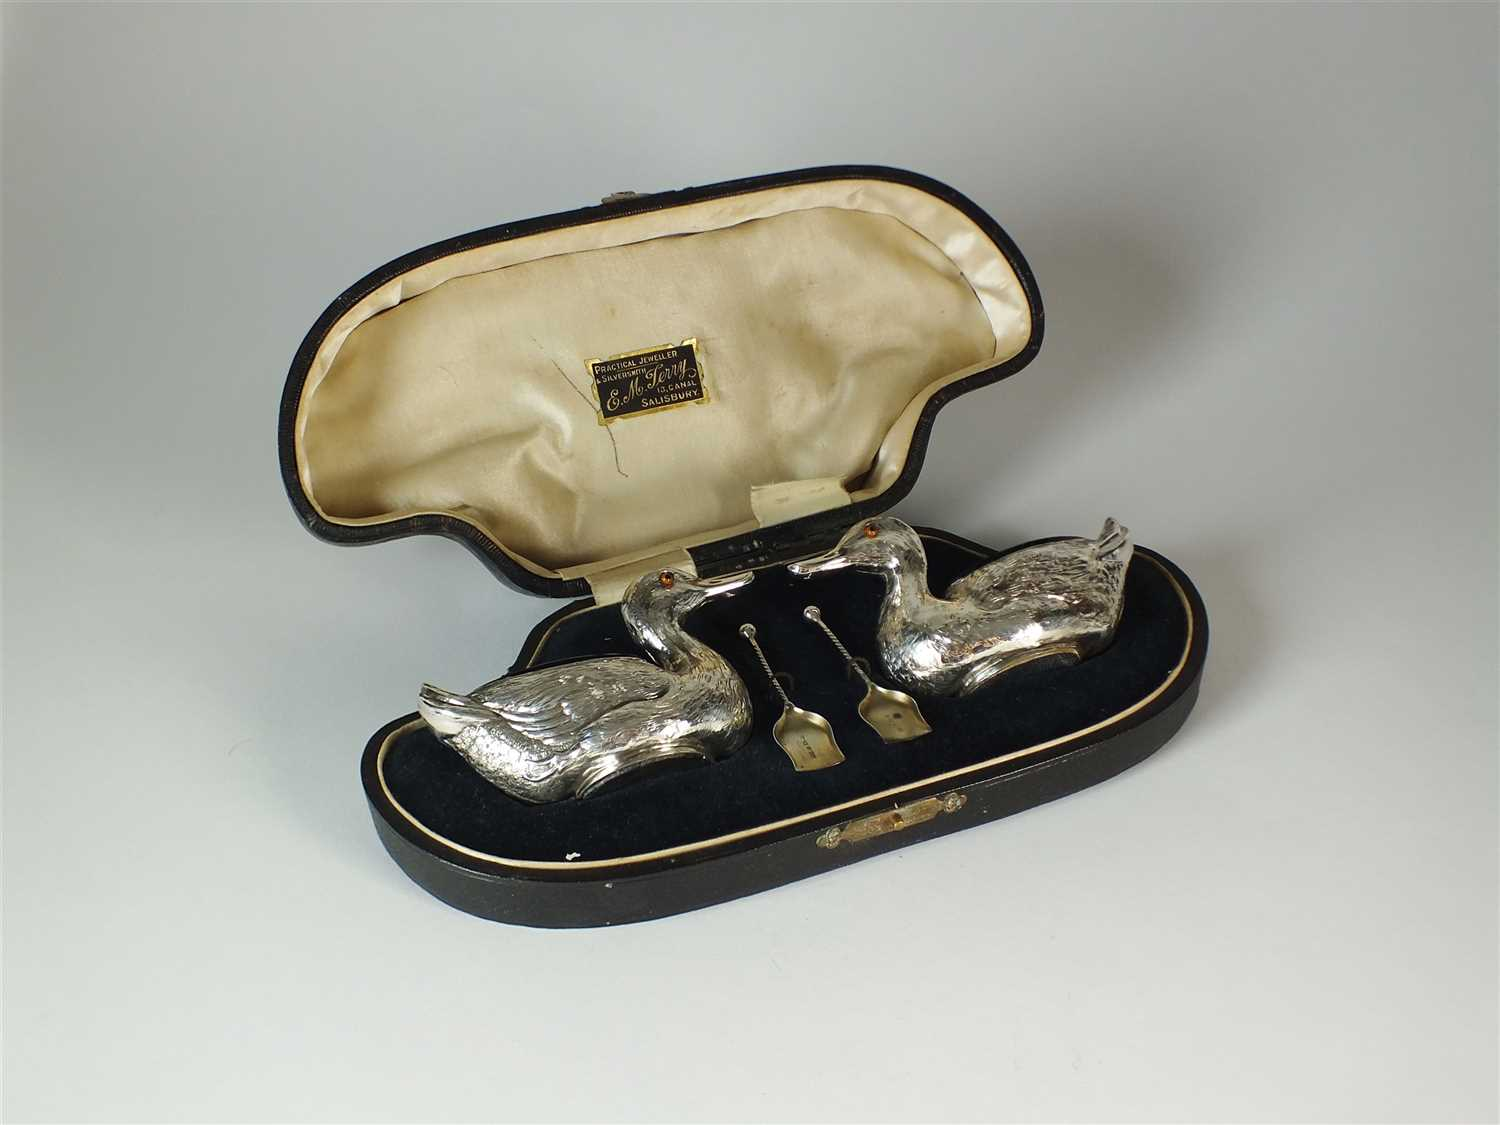 227 - A cased pair of Edwardian novelty silver duck salts